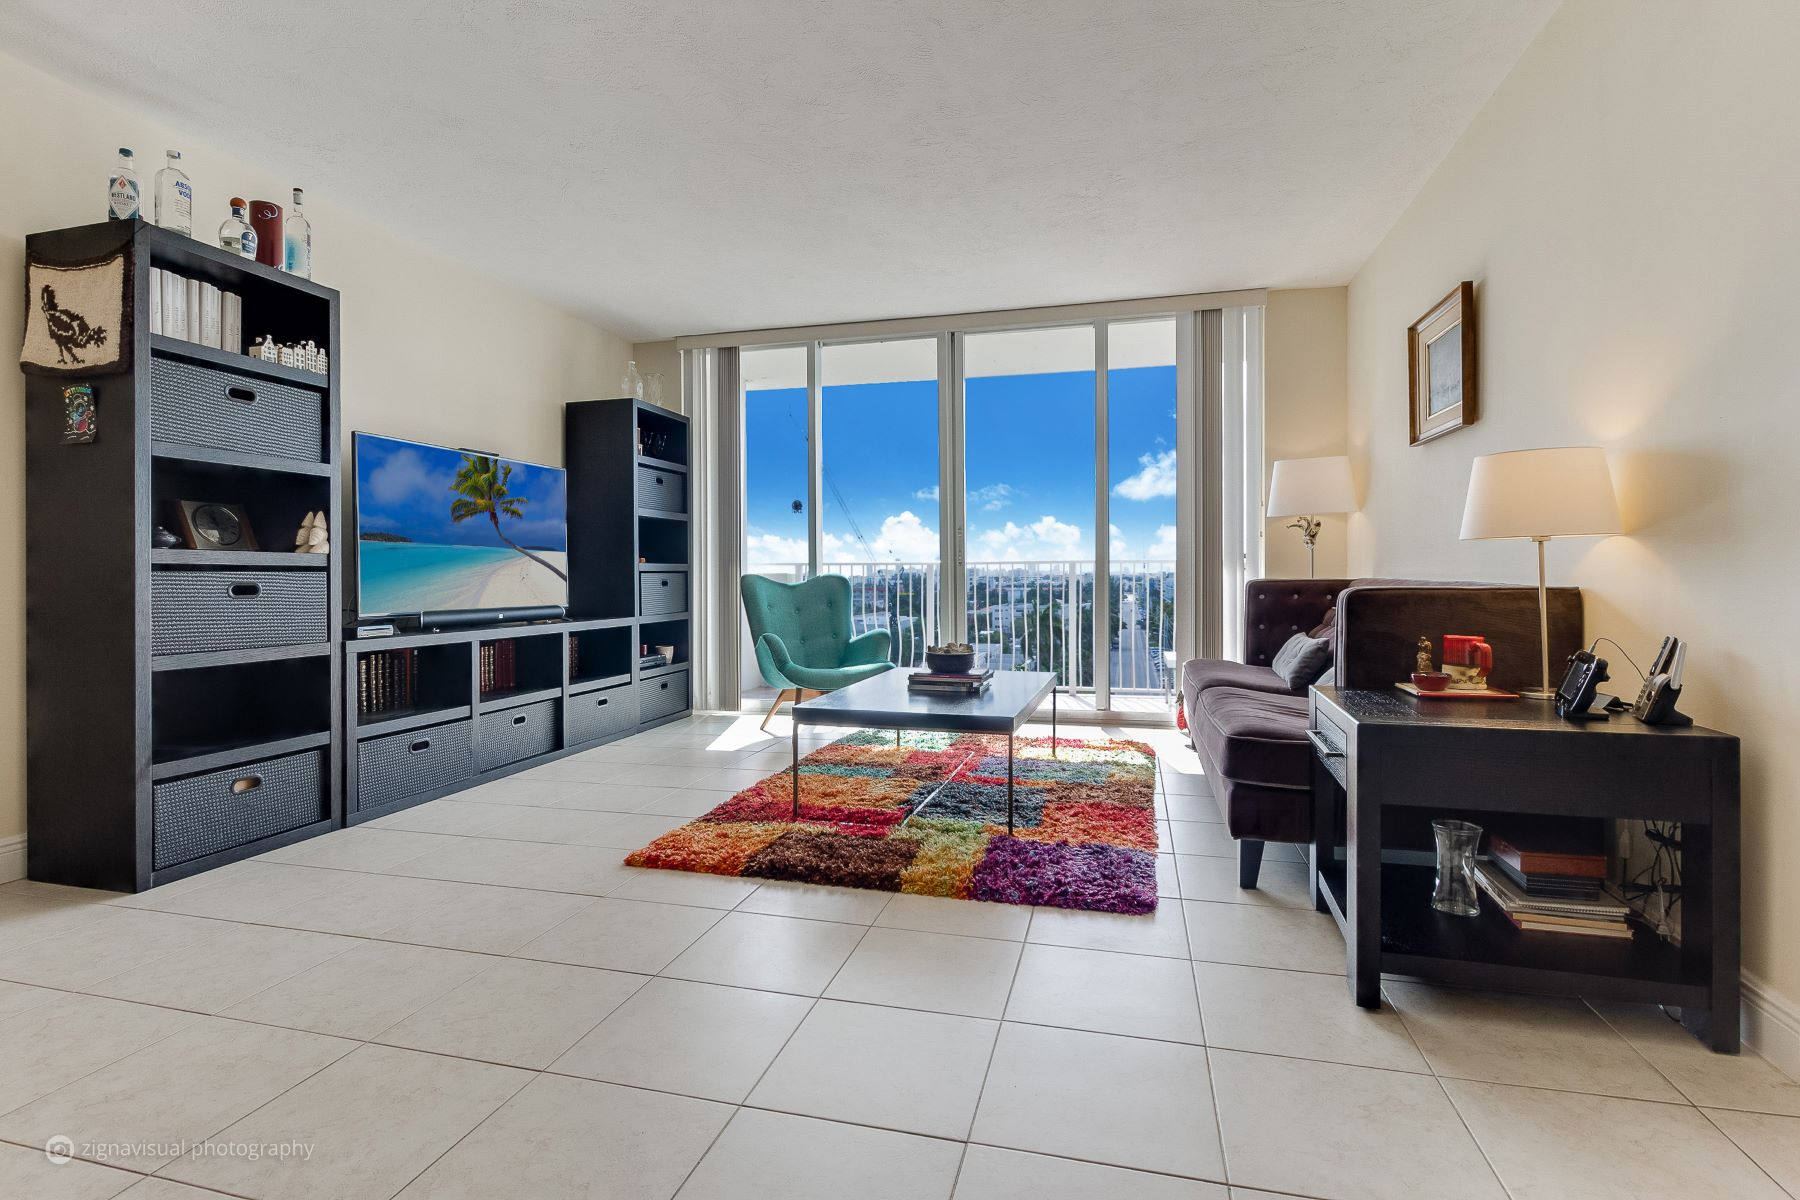 Condominium for Sale at 10350 W Bay Harbor Dr #9LM 10350 W Bay Harbor Dr 9LM Bay Harbor Islands, Florida, 33154 United States